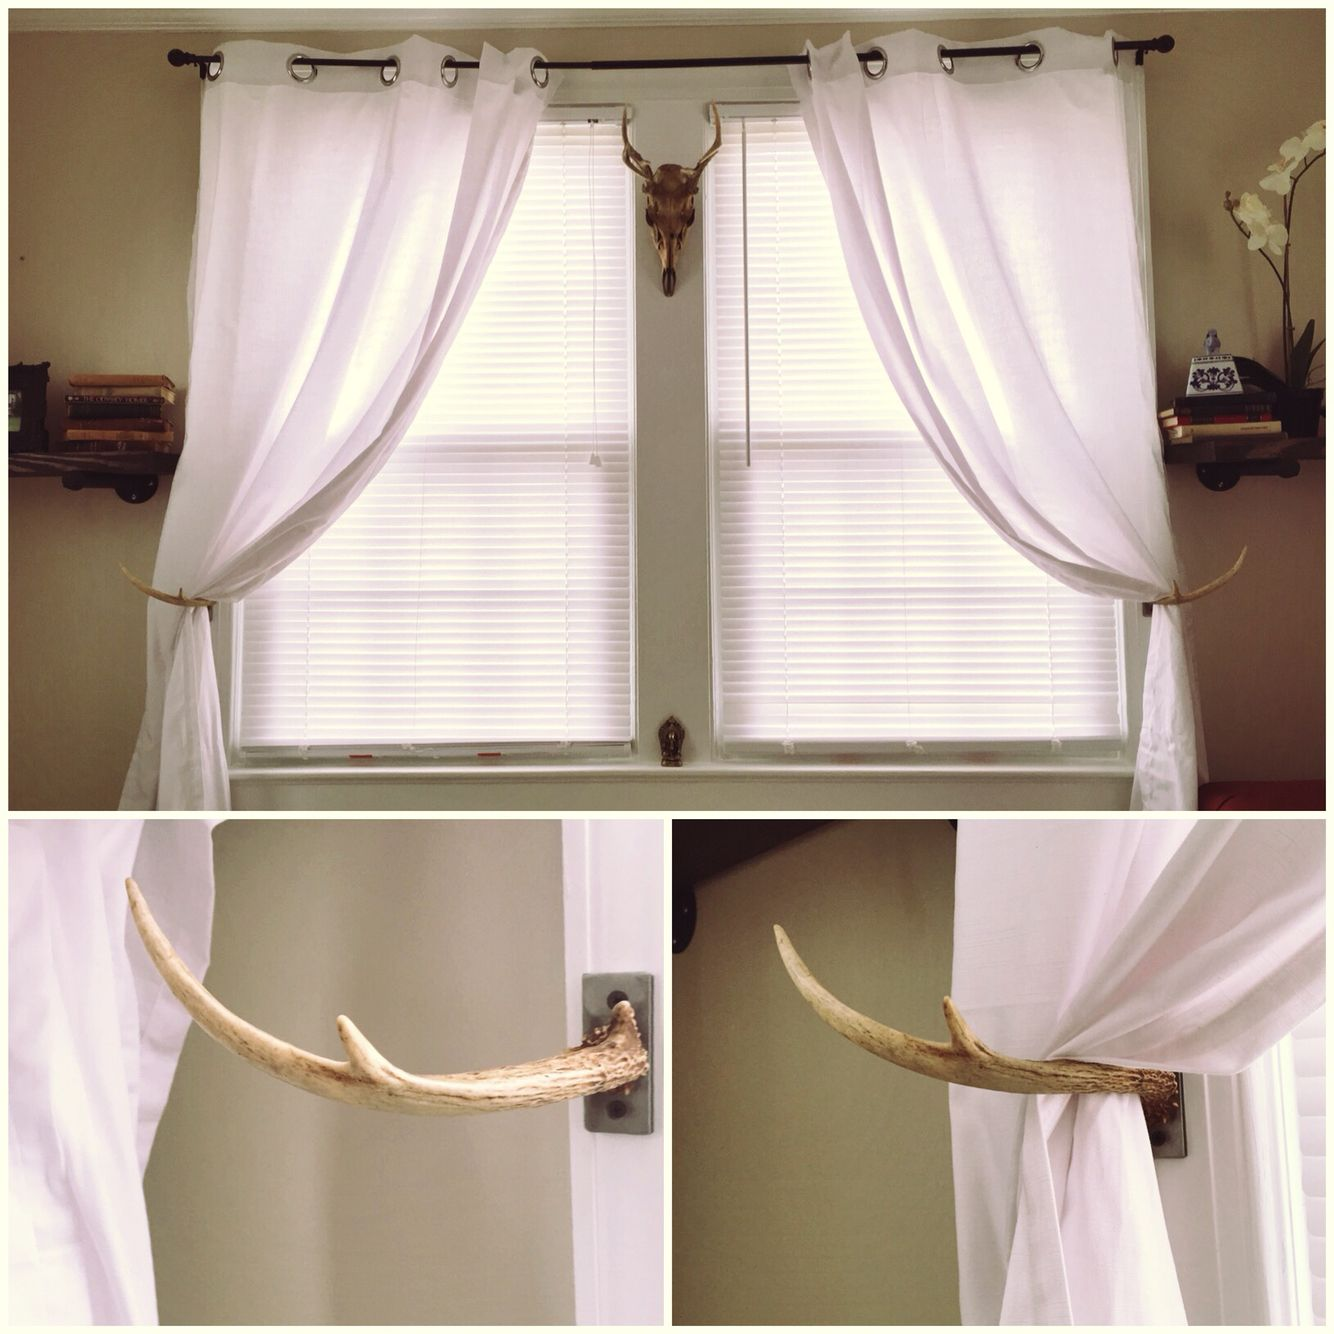 Birch Curtain Rod With Antler Prongs Curtain Rods Wildlife Bedroom Rustic Curtain Rods